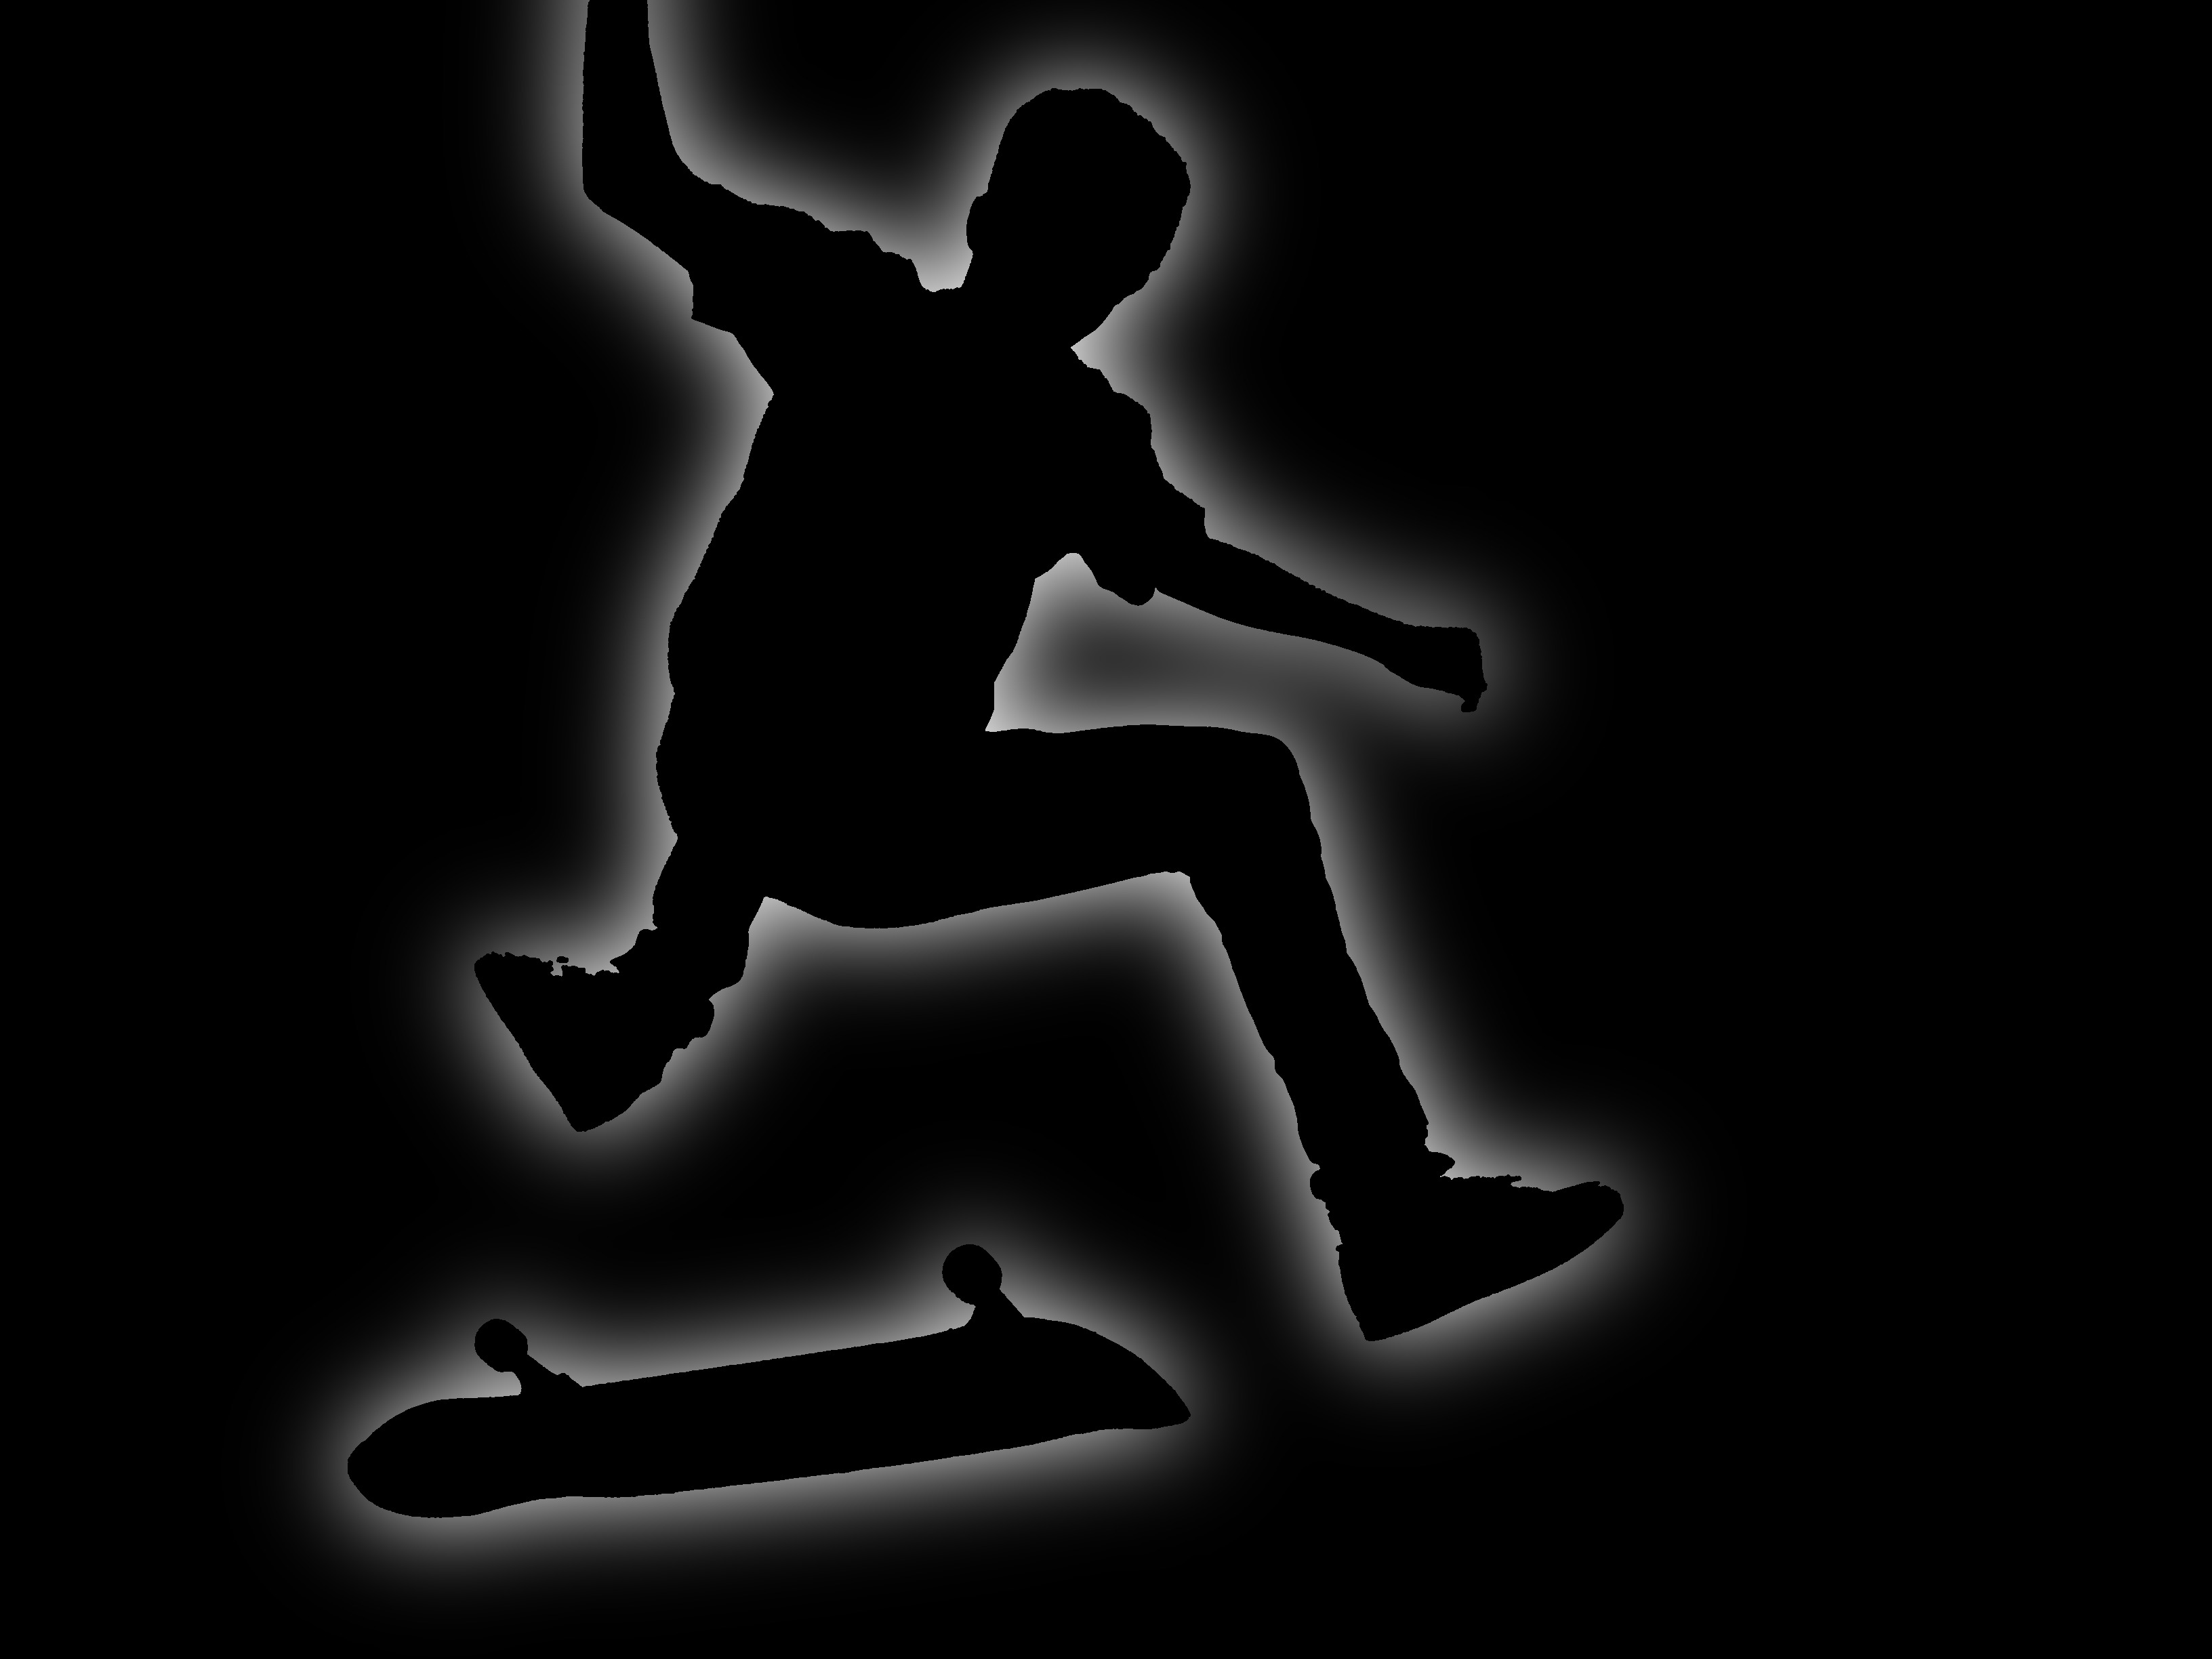 Skateboarding skate abstract HD Wallpaper